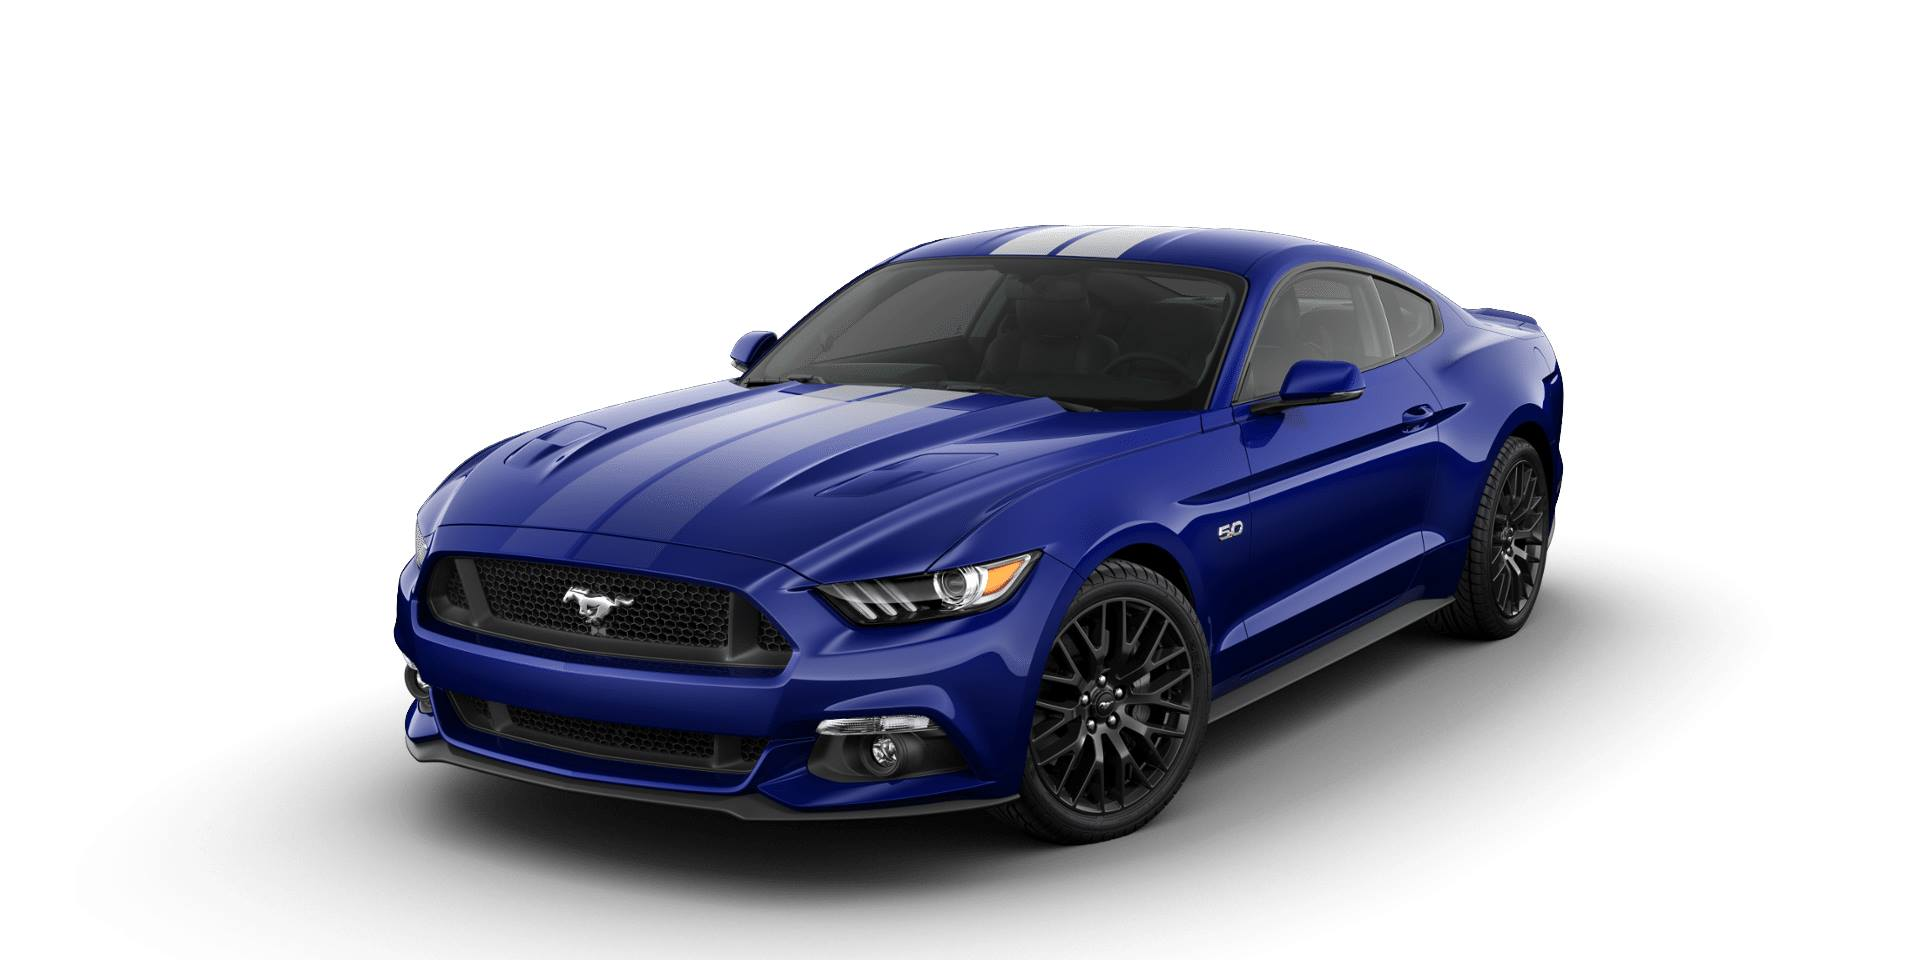 2016 Mustang Colors >> Black Strips or White Strips on Deep Blue Impact - Mustang Evolution